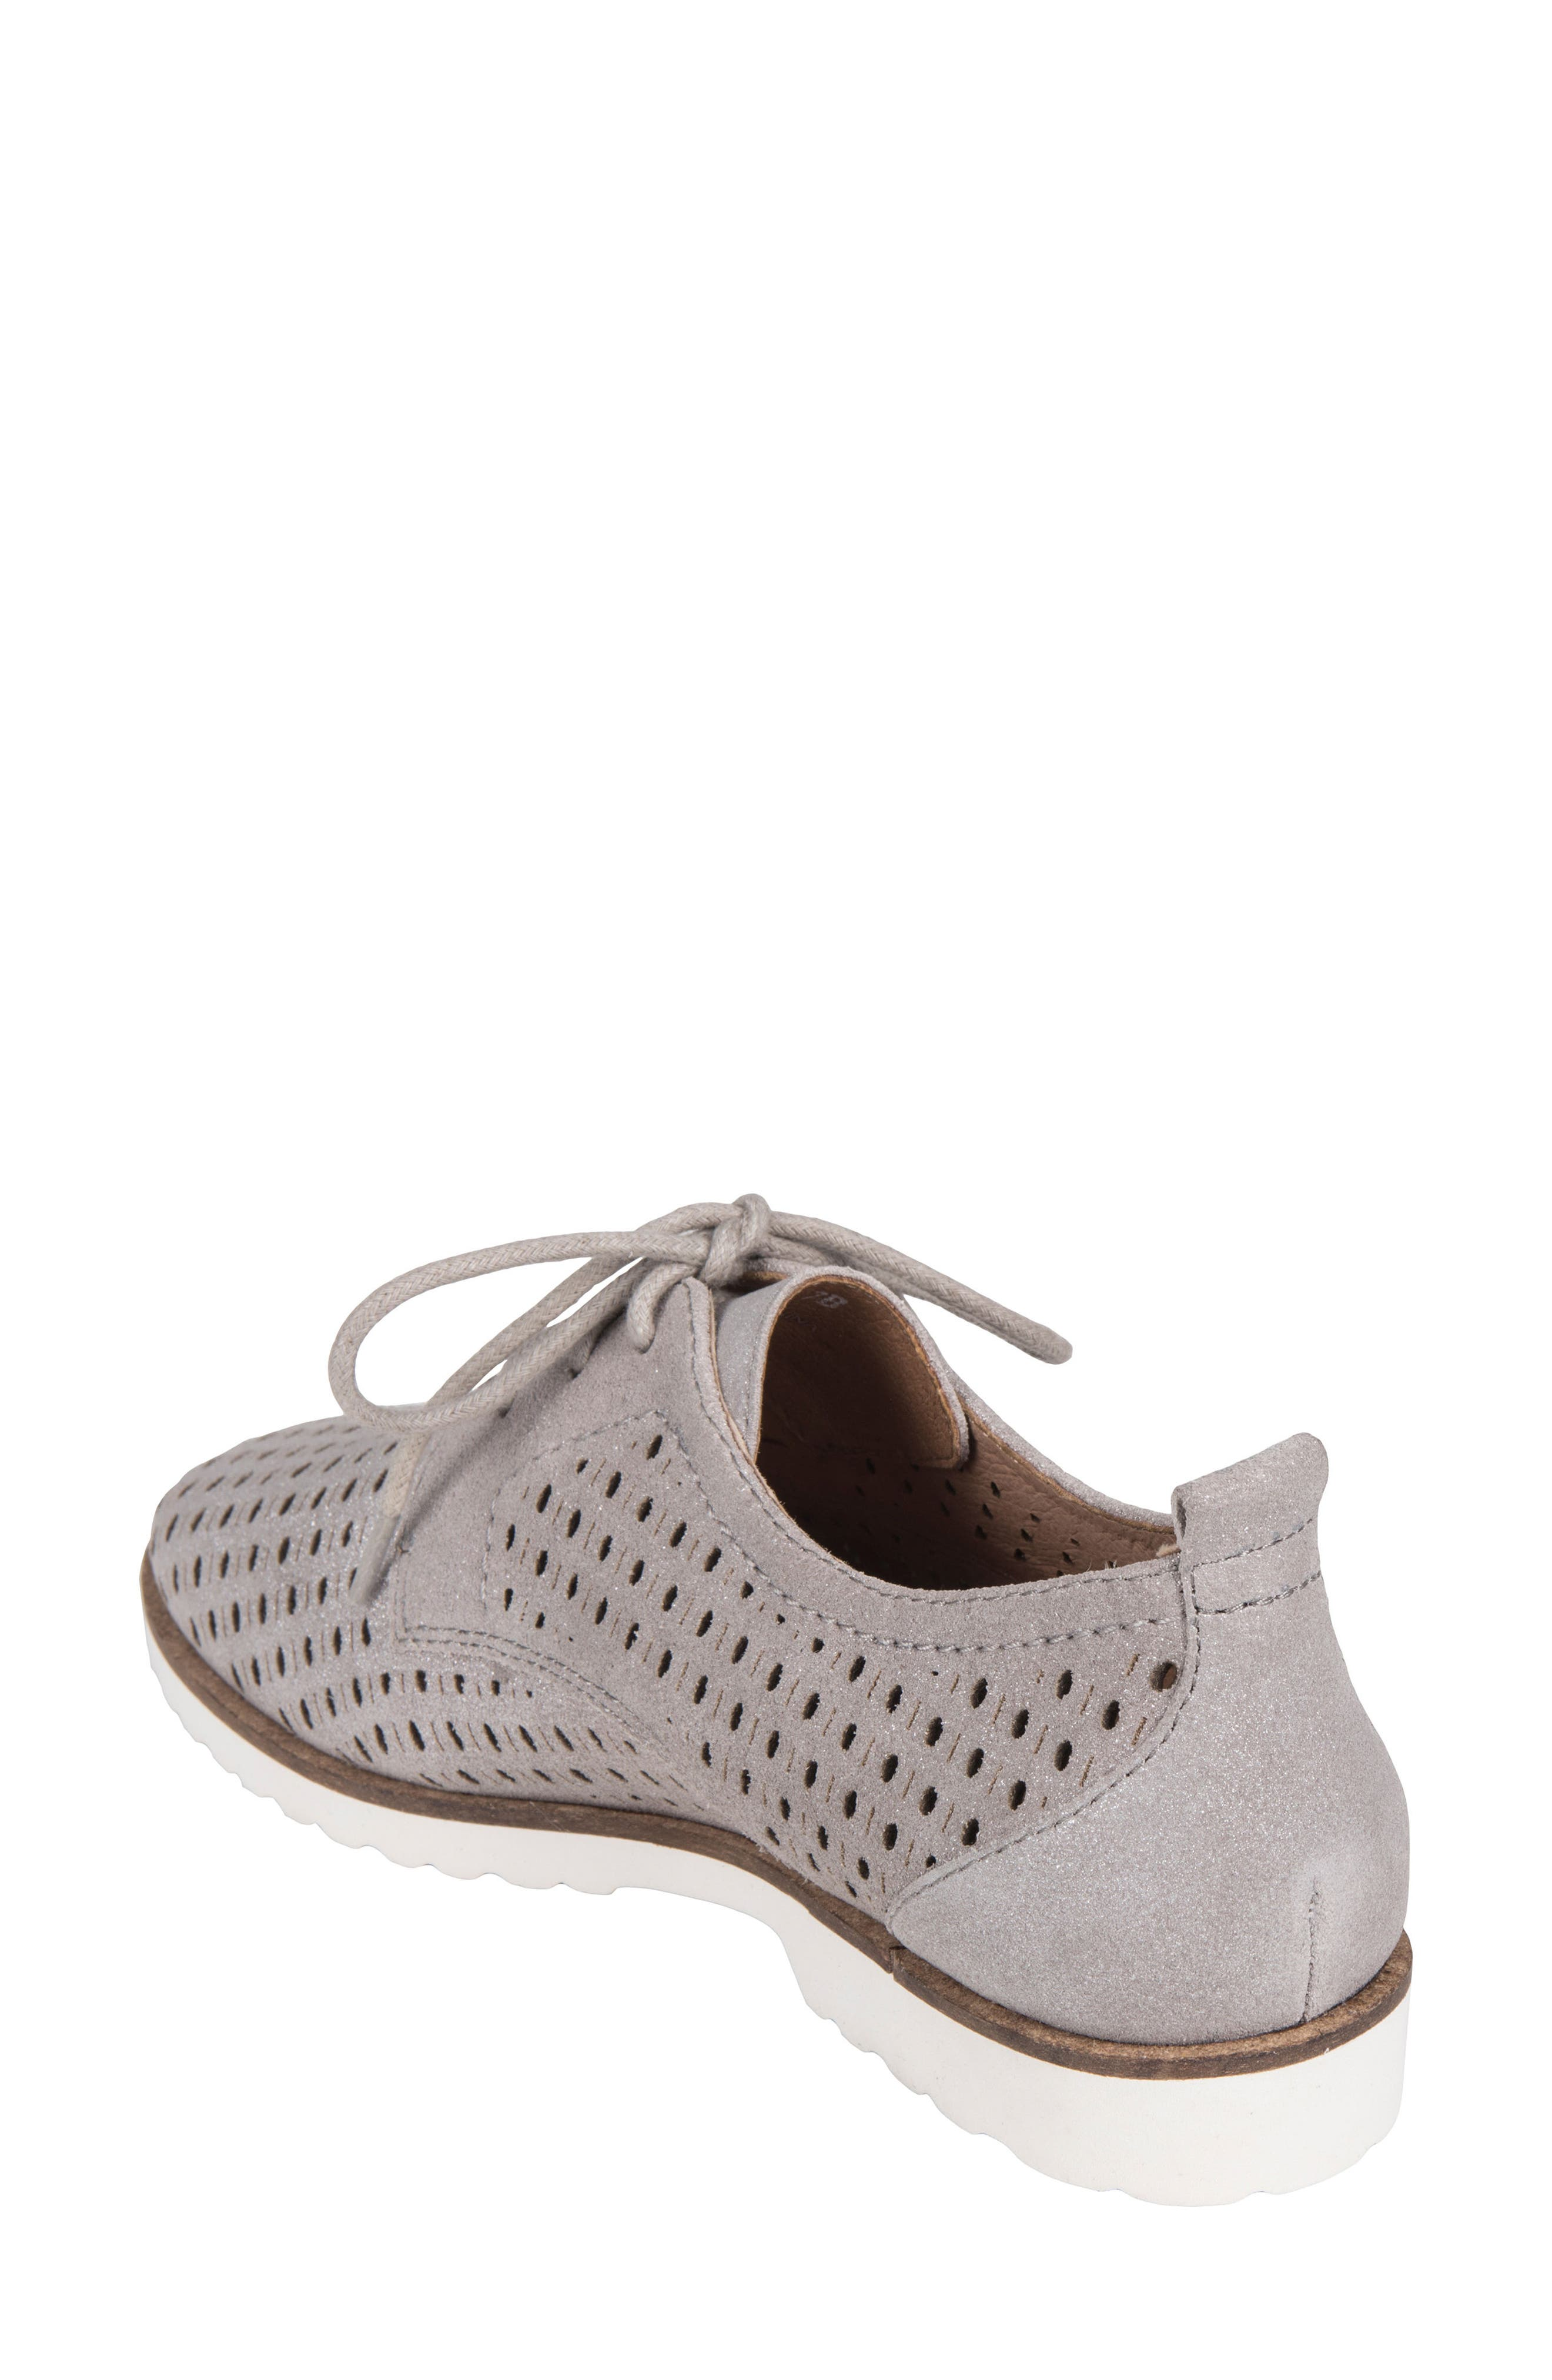 Camino Perforated Sneaker,                             Alternate thumbnail 2, color,                             SILVER METALLIC SUEDE